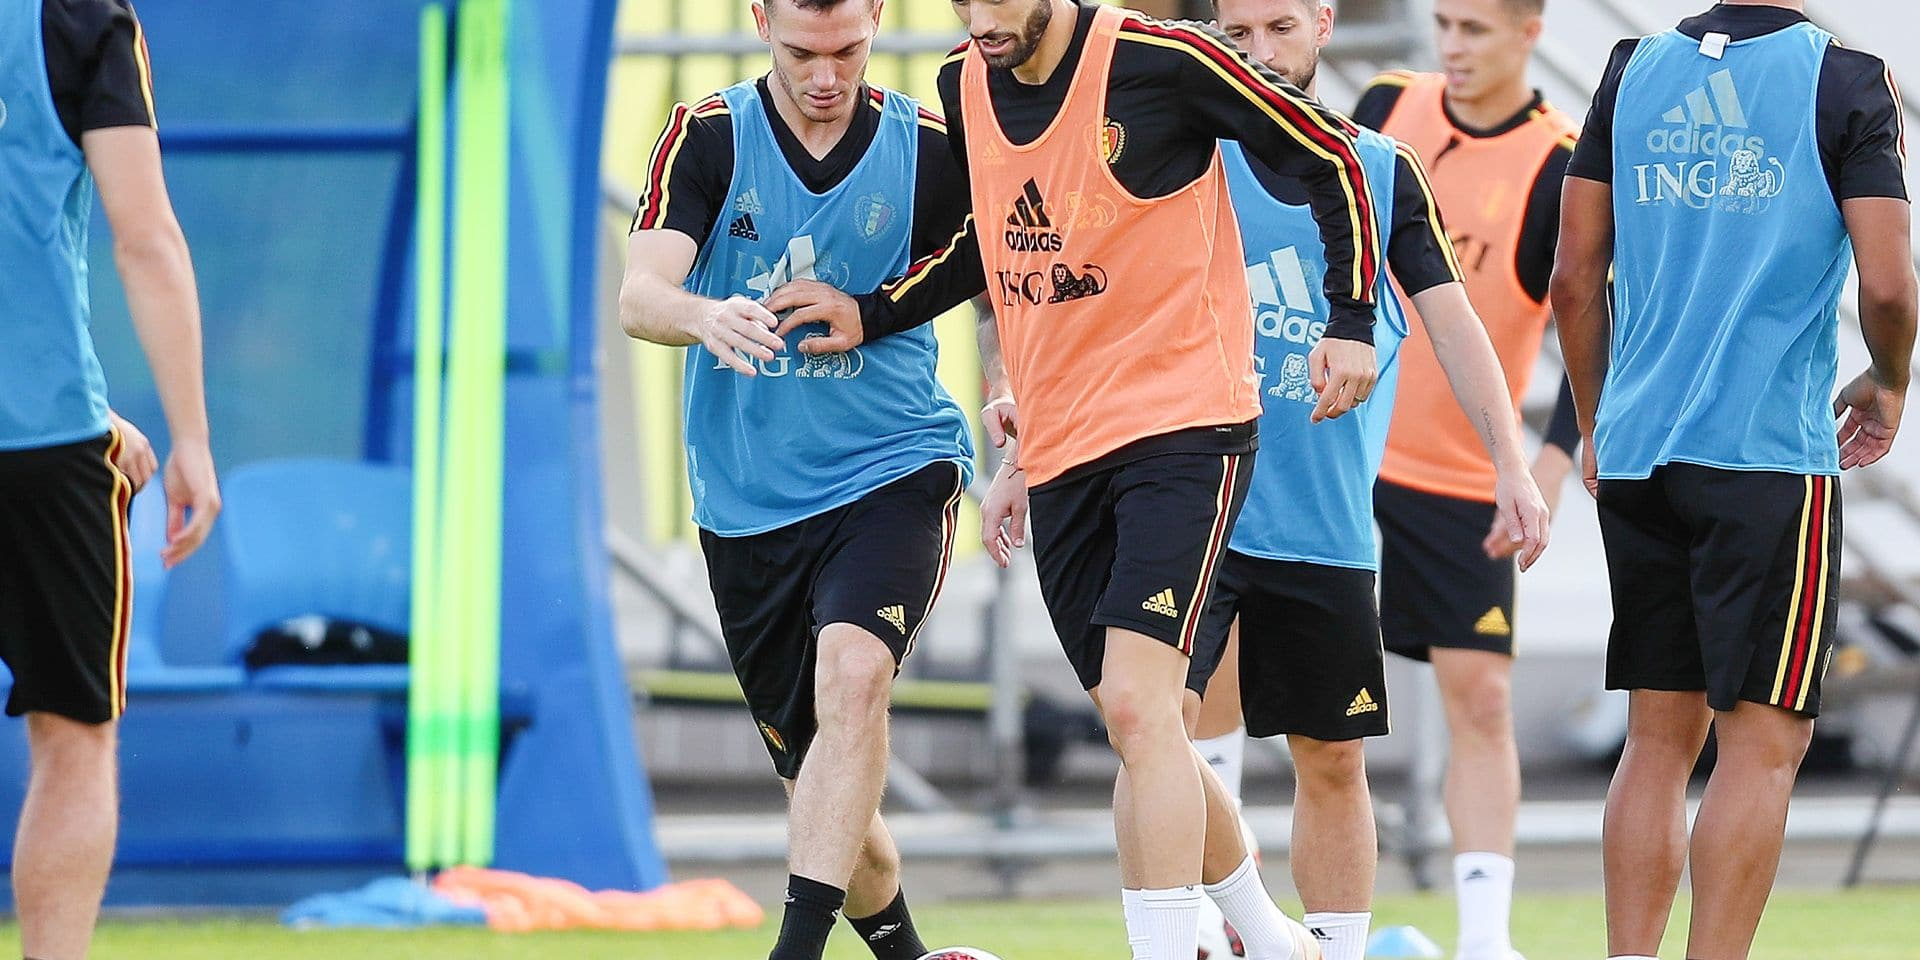 Belgium's Thomas Vermaelen and Belgium's Yannick Carrasco pictured during a training session of Belgian national soccer team the Red Devils in Dedovsk, near Moscow, Russia, Sunday 08 July 2018. The Devils qualified for the semi-finals of the FIFA World Cup 2018, next Tuesday they will meet France. BELGA PHOTO BRUNO FAHY